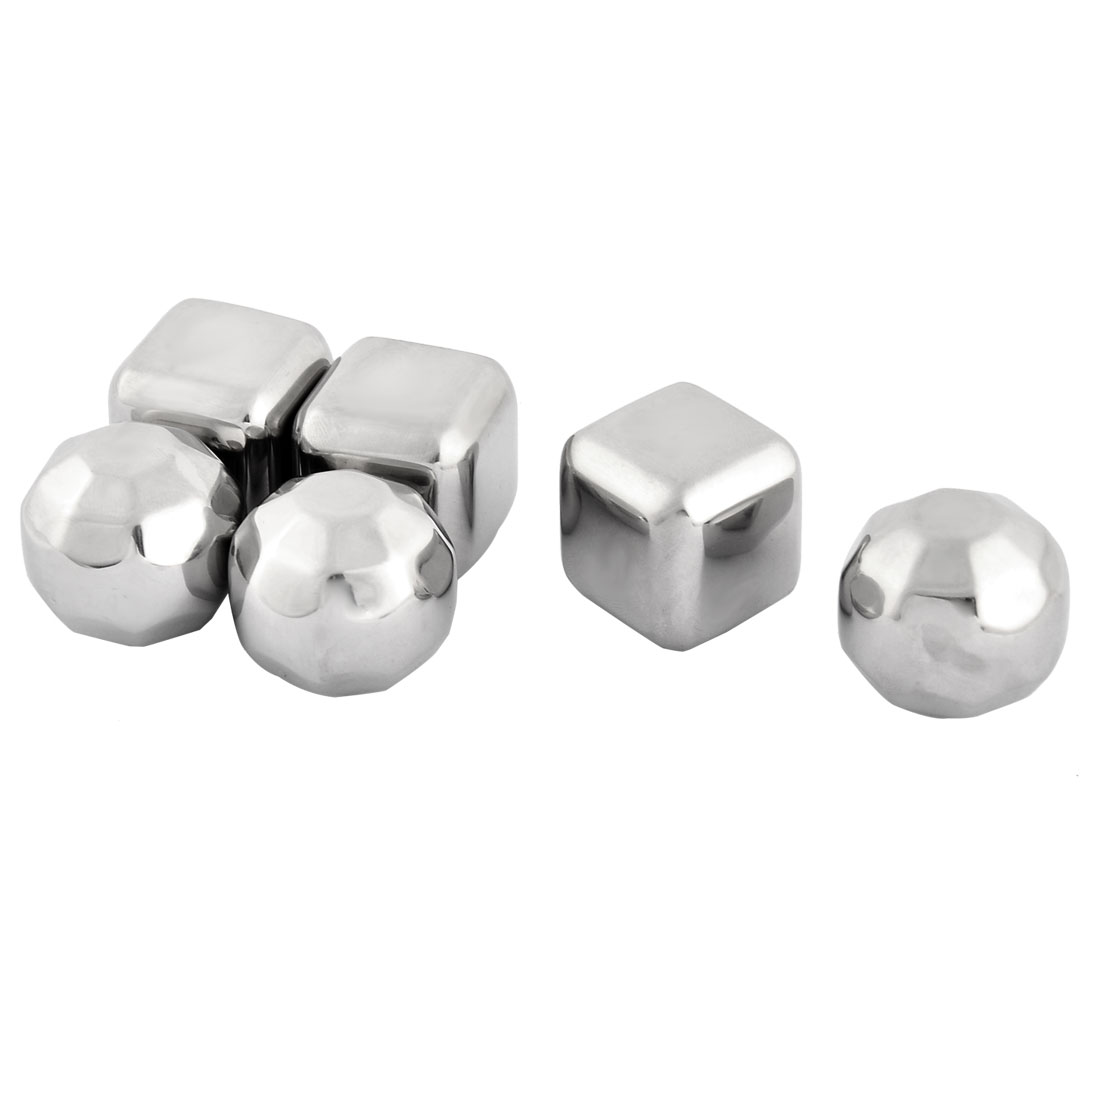 Home Stainless Steel Cubic Faceted Shaped Soda Juice Ice Cube Silver Tone 6 in 1